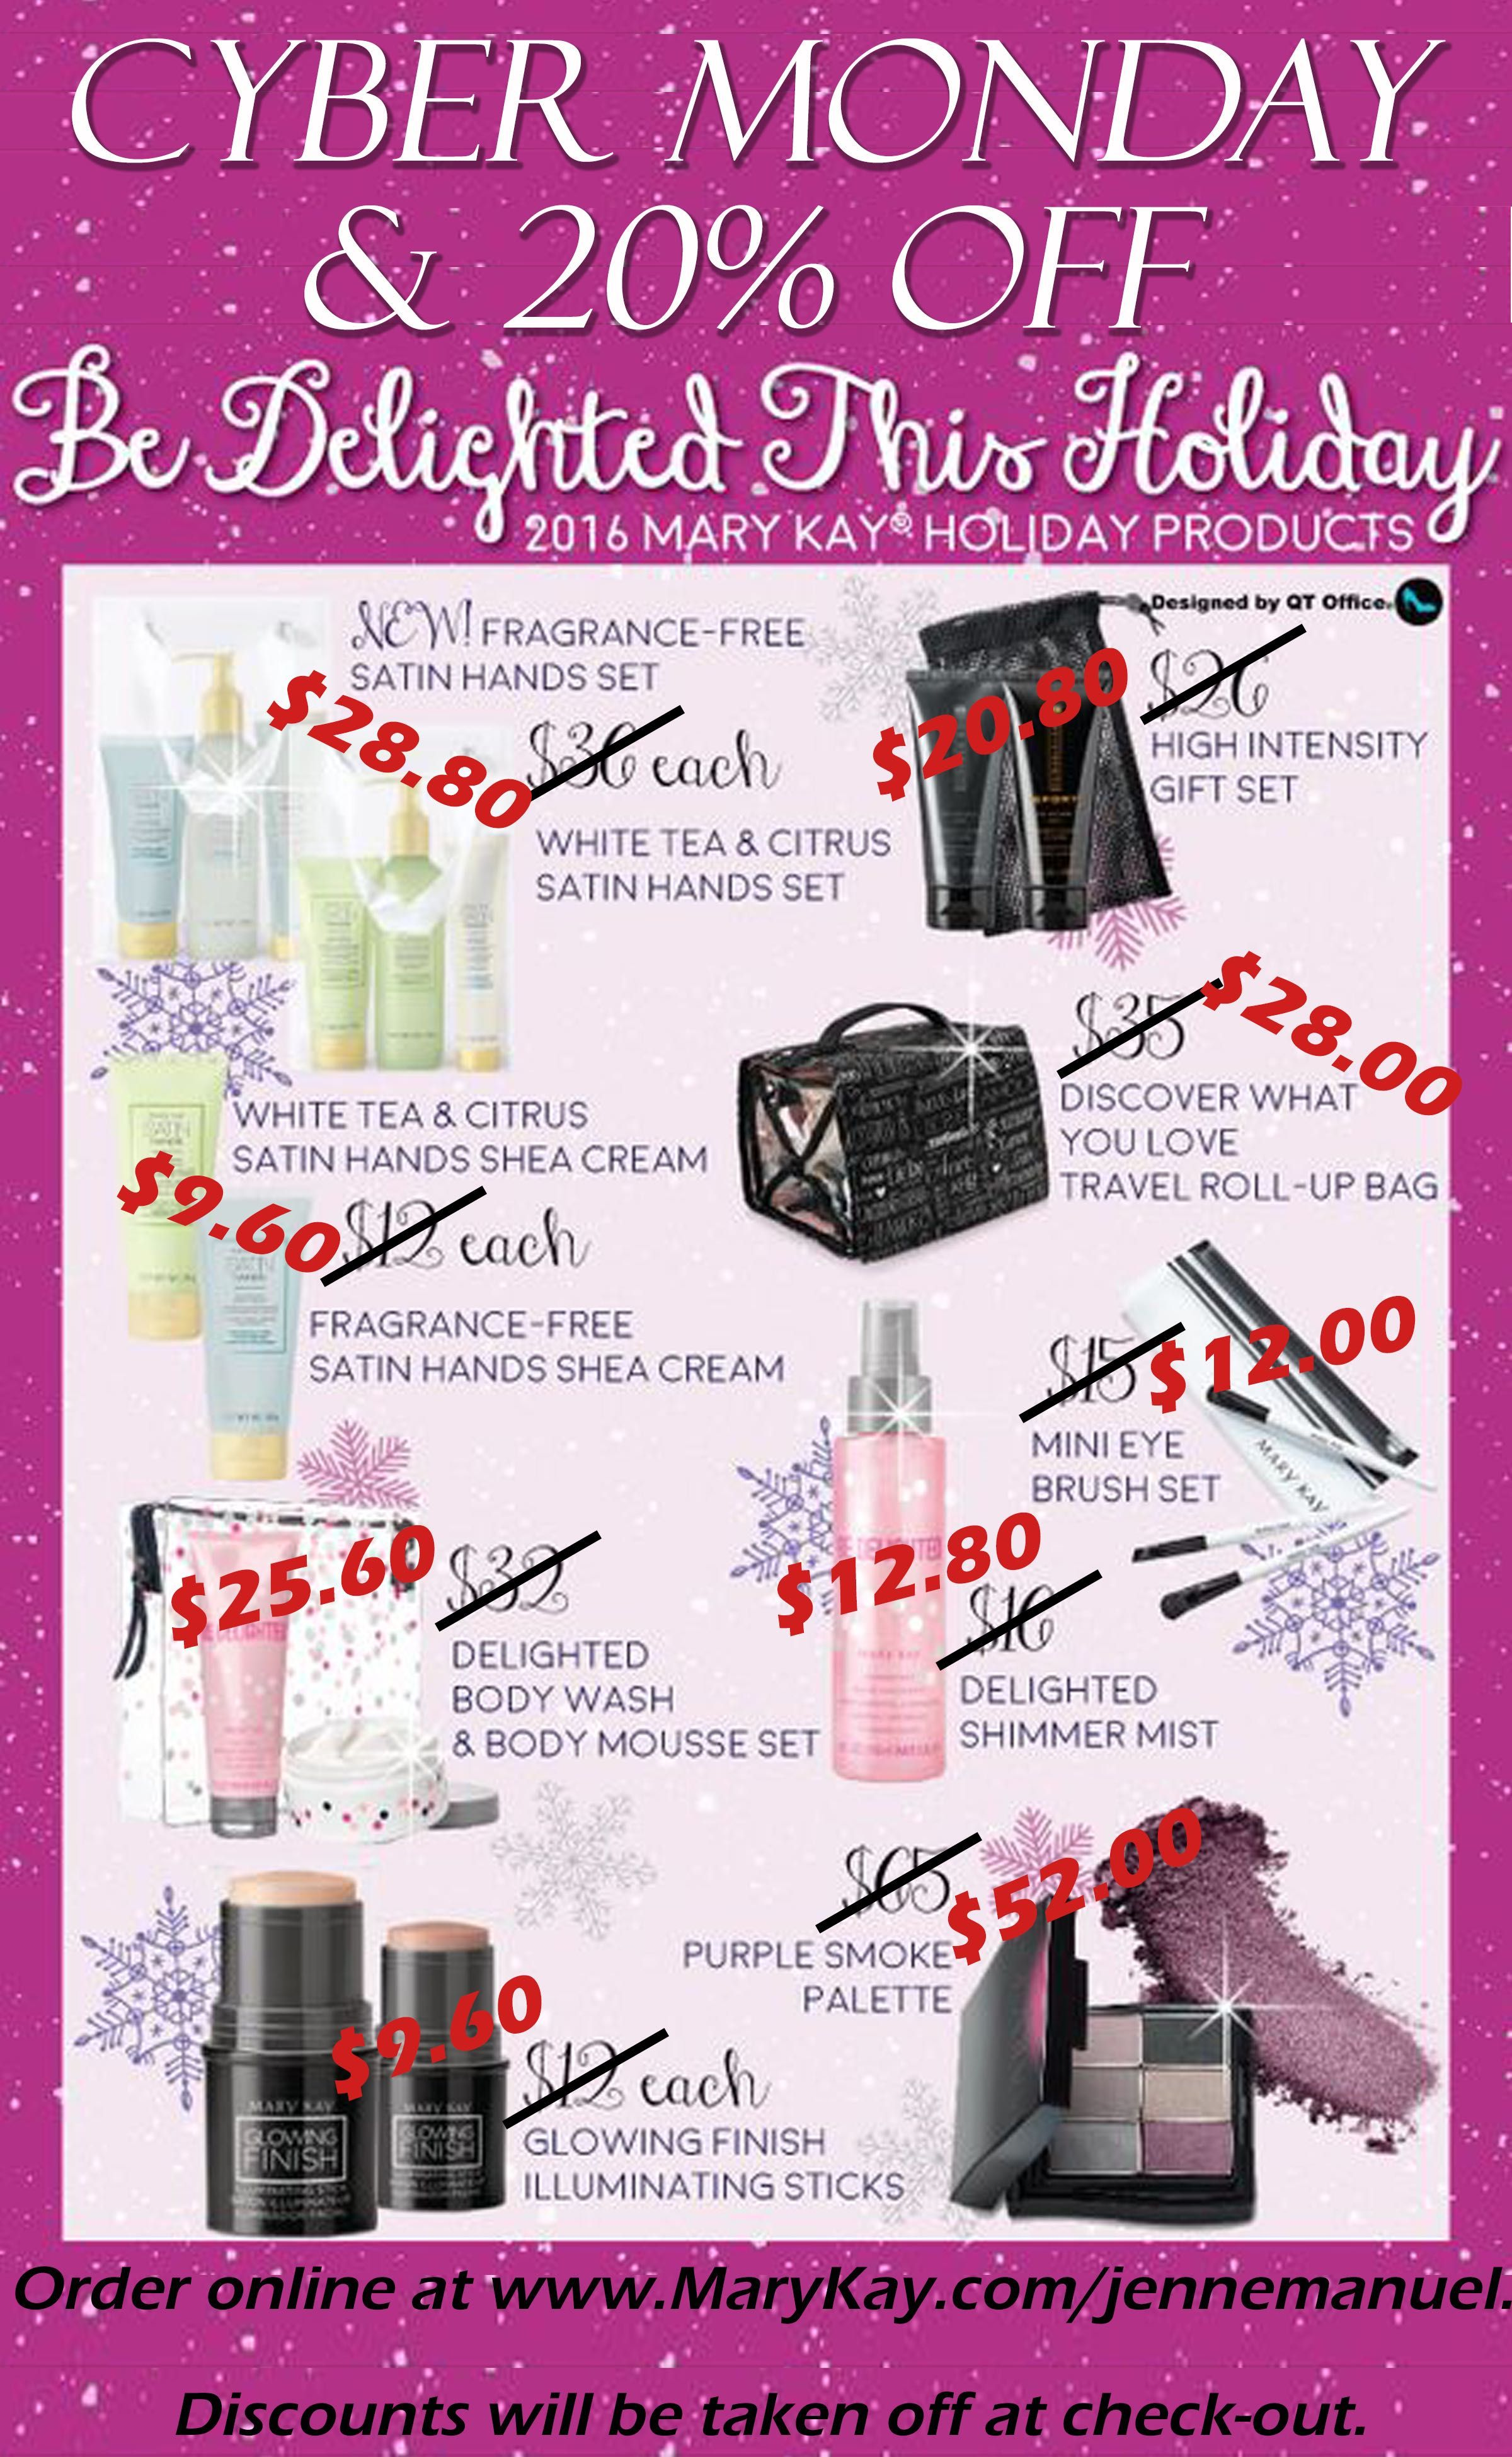 Celebrating Cyber Monday On November 28th With These Great Deals